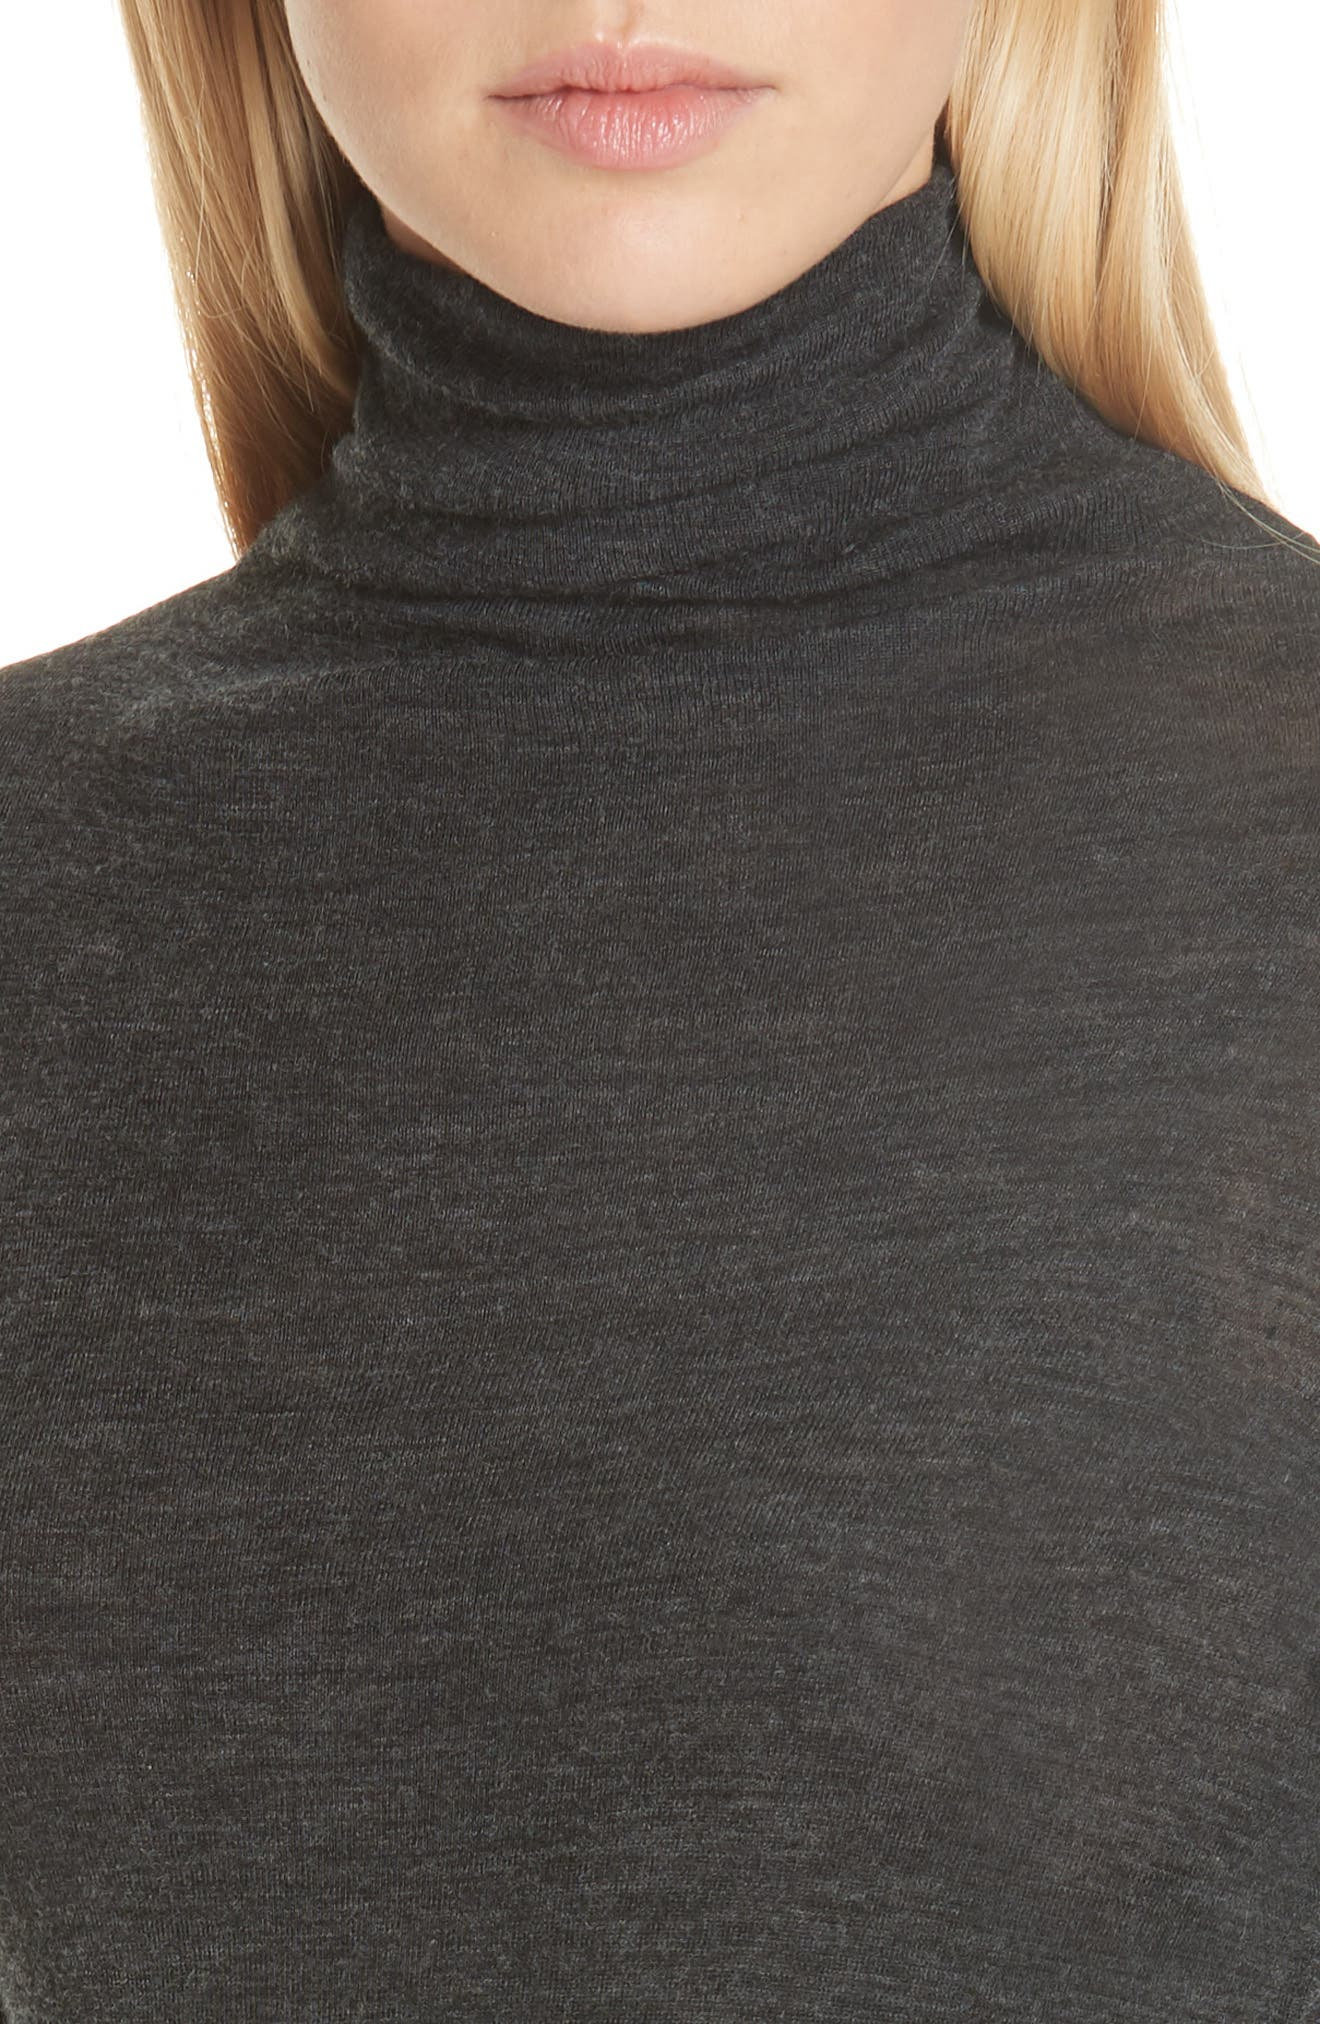 Wool Turtleneck Top,                             Alternate thumbnail 4, color,                             065